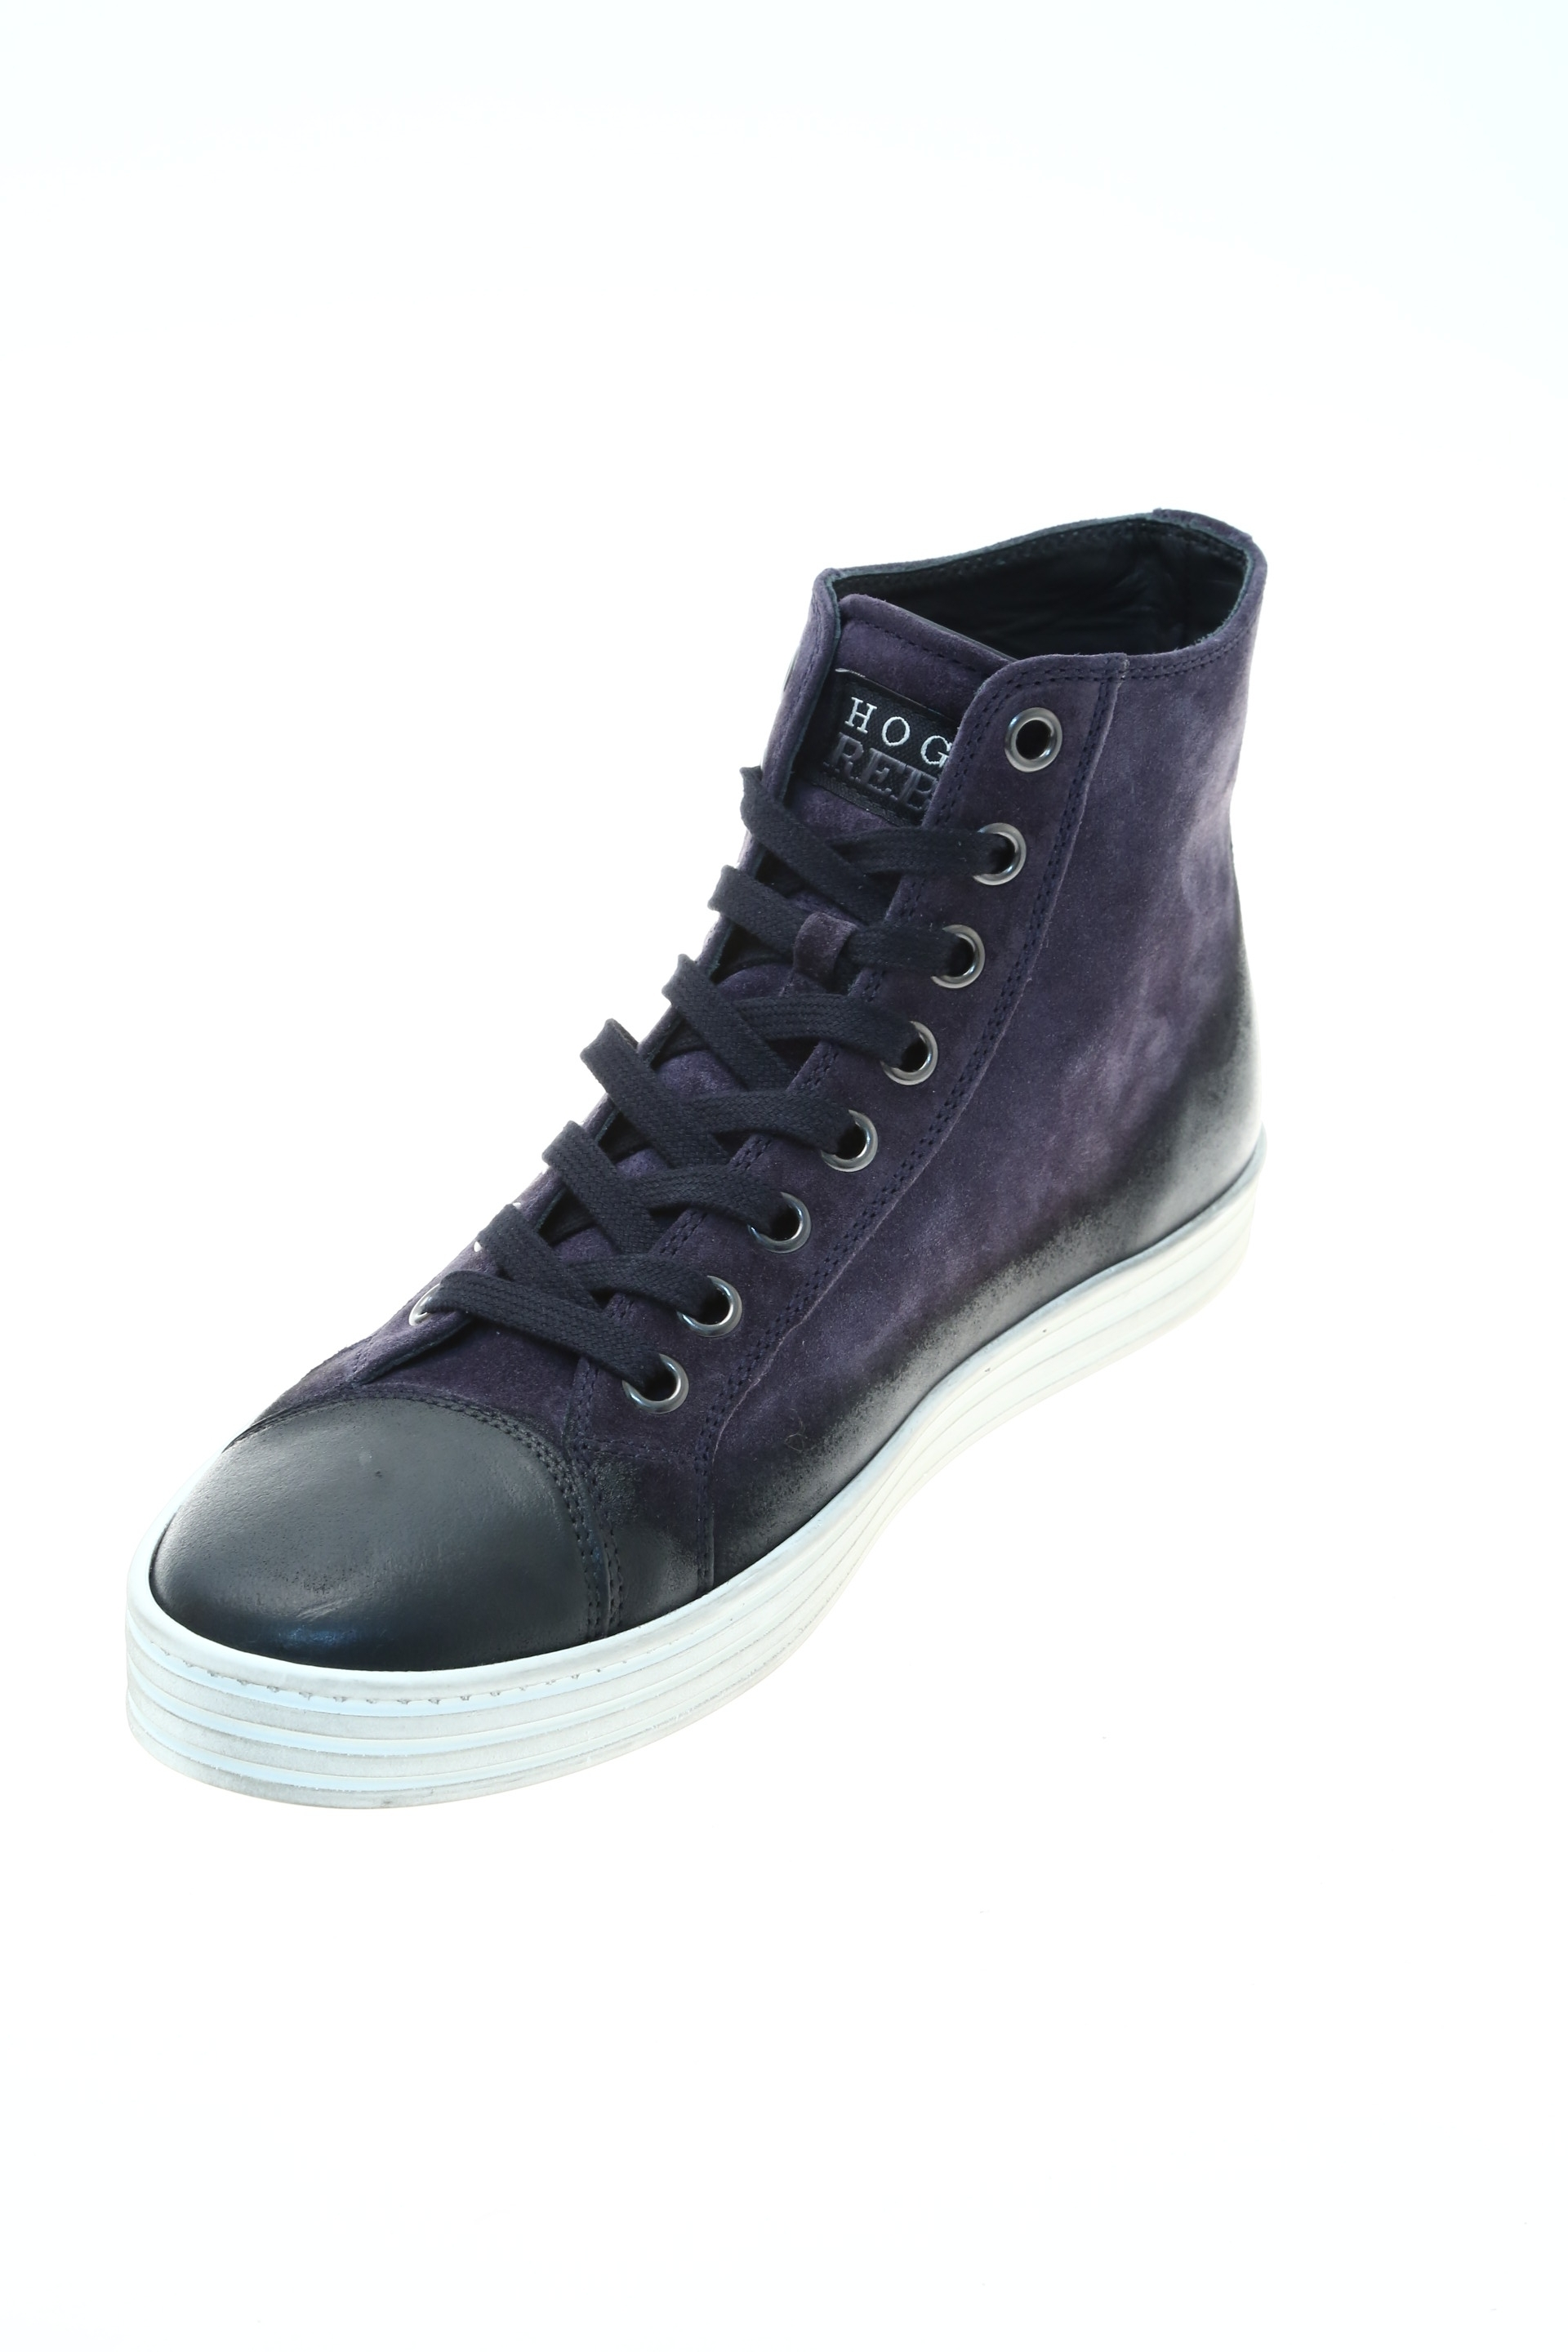 Hogan Rebel Sneaker Blu Pelle Hogan Rebel Sneakers